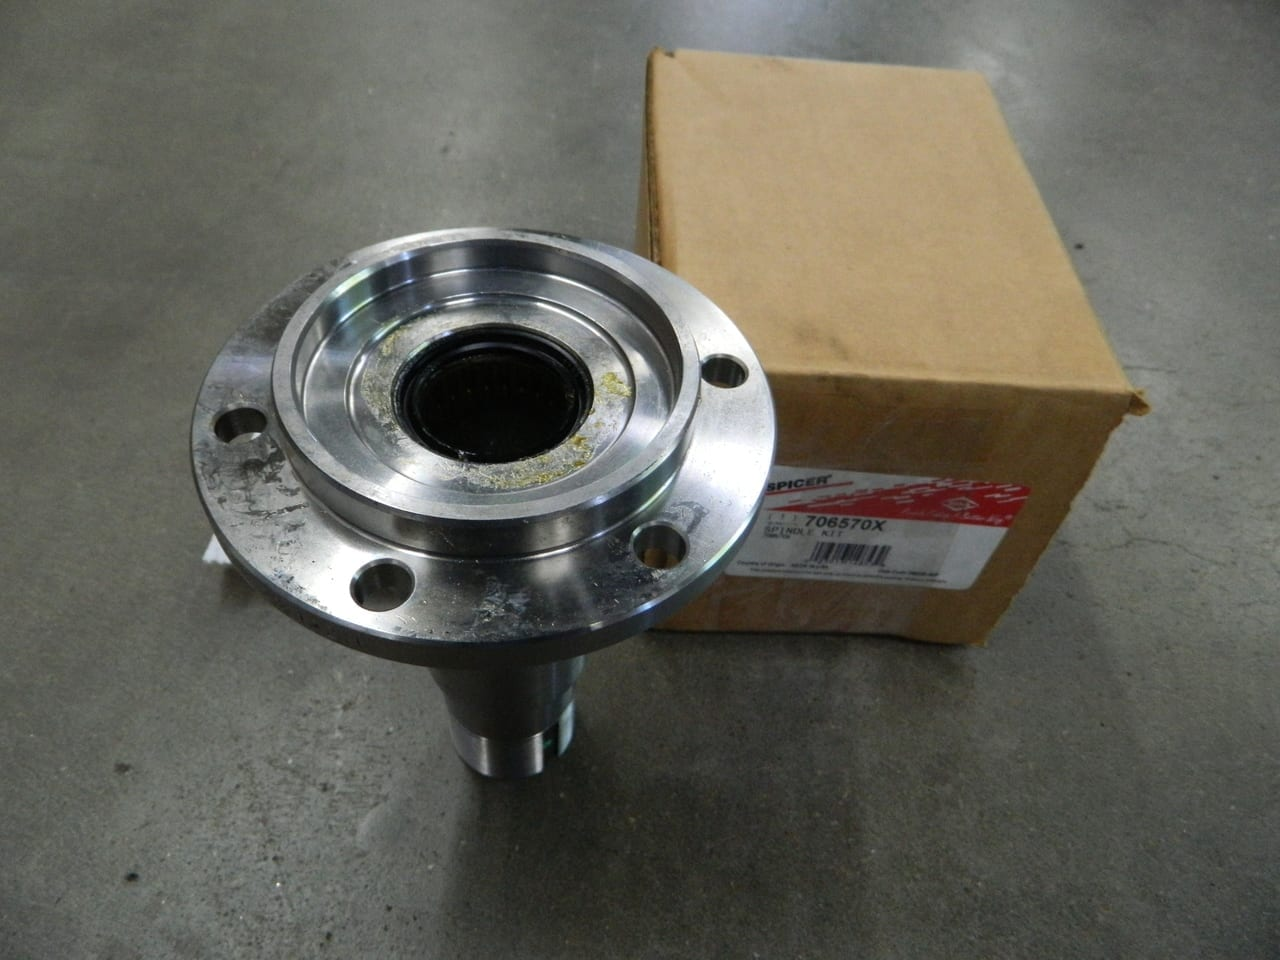 1977-1991 GM Chevy Dana 44 4X4 Axle Front Spindle Corporate 10 Bolt Blazer Suburban K10 K20